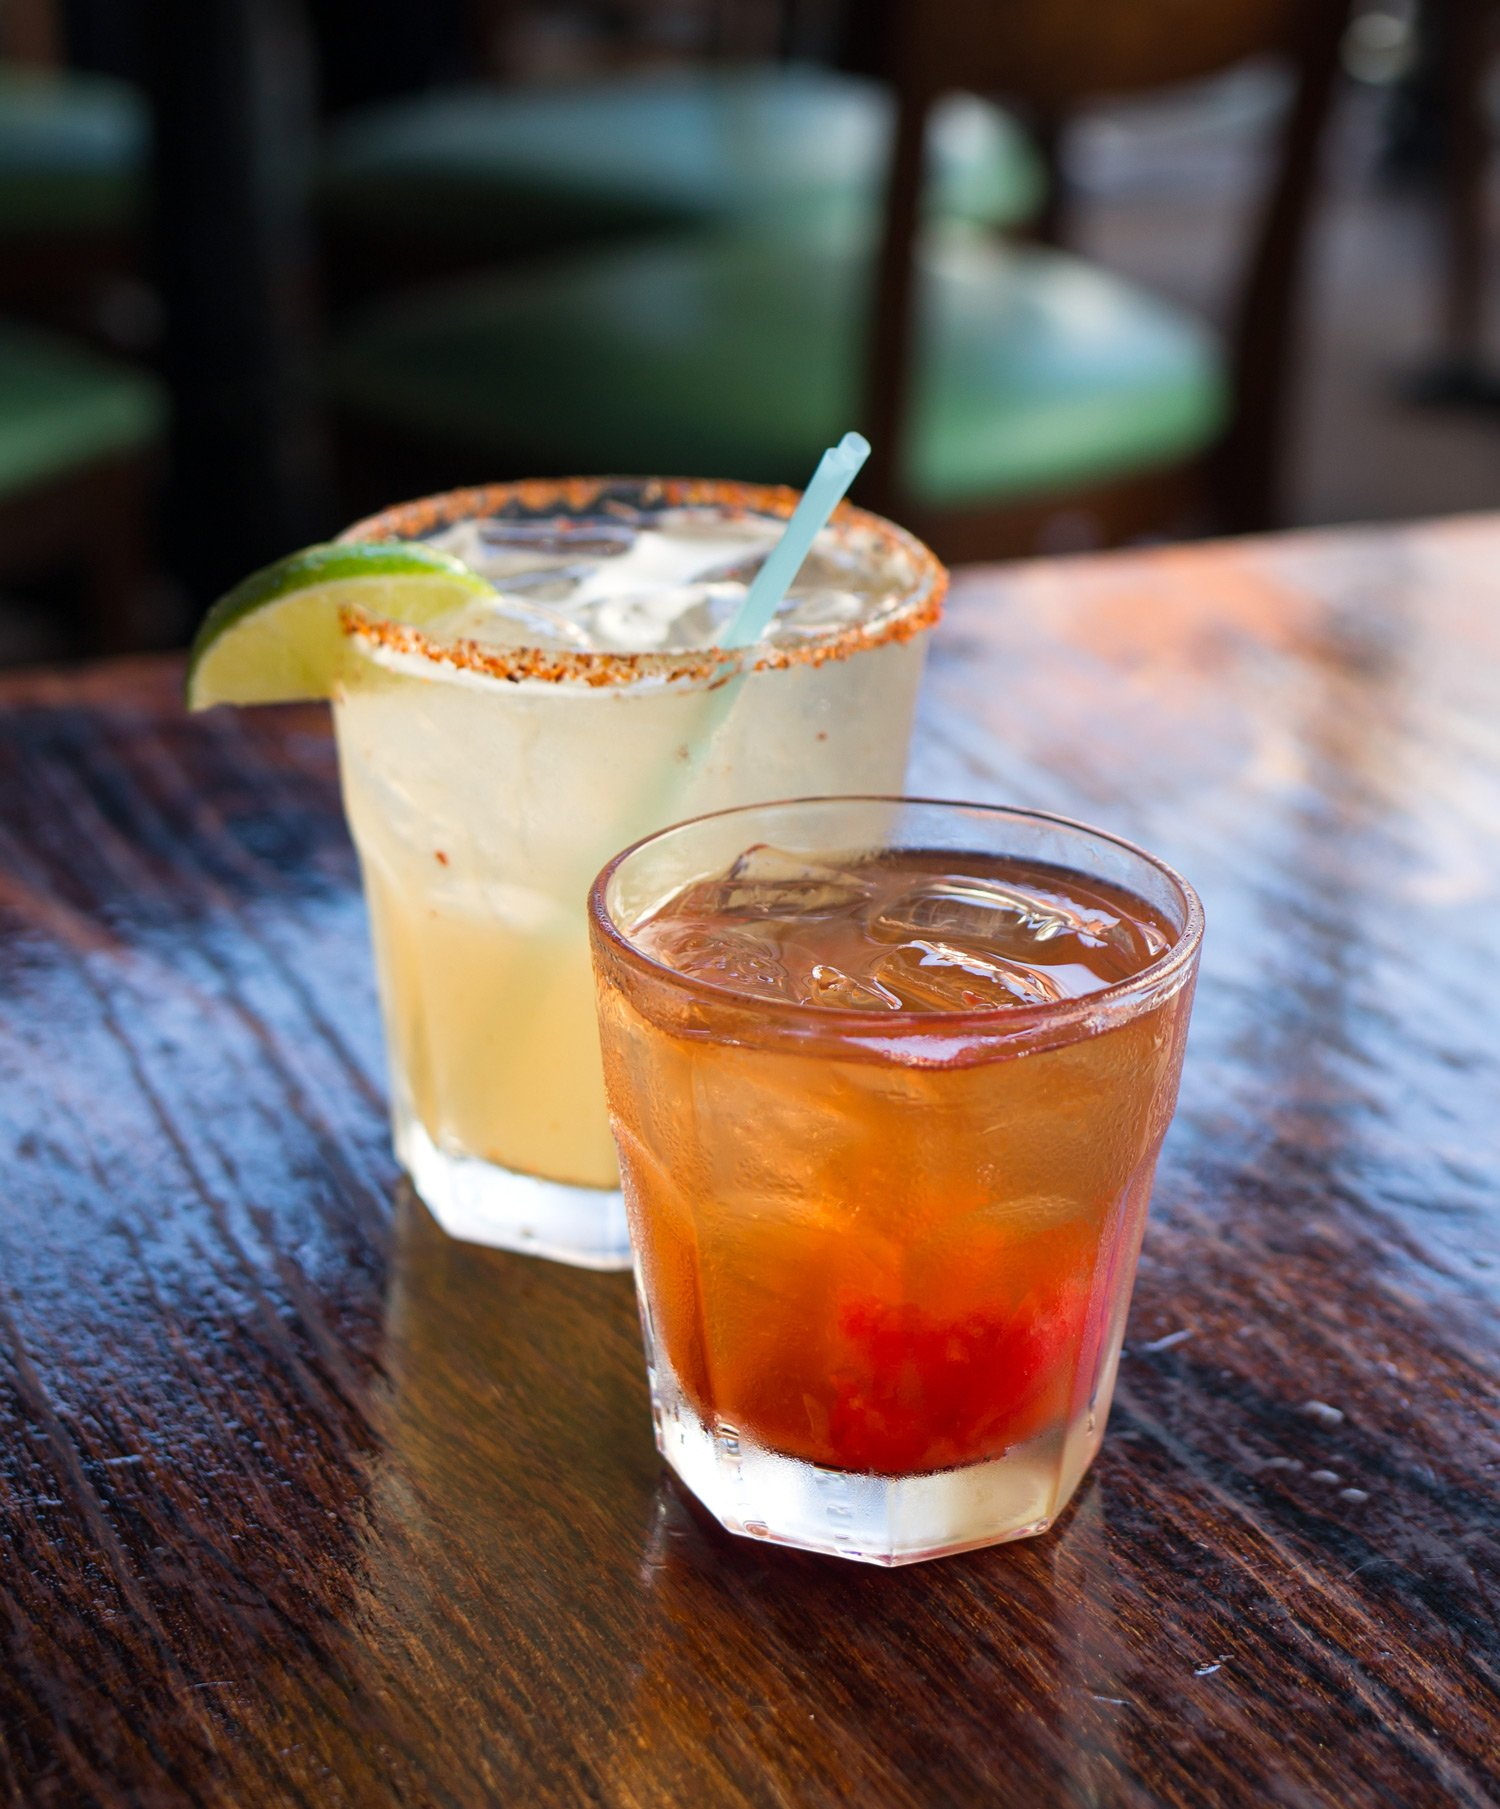 The Grapefruit Margarita and Old Fashioned